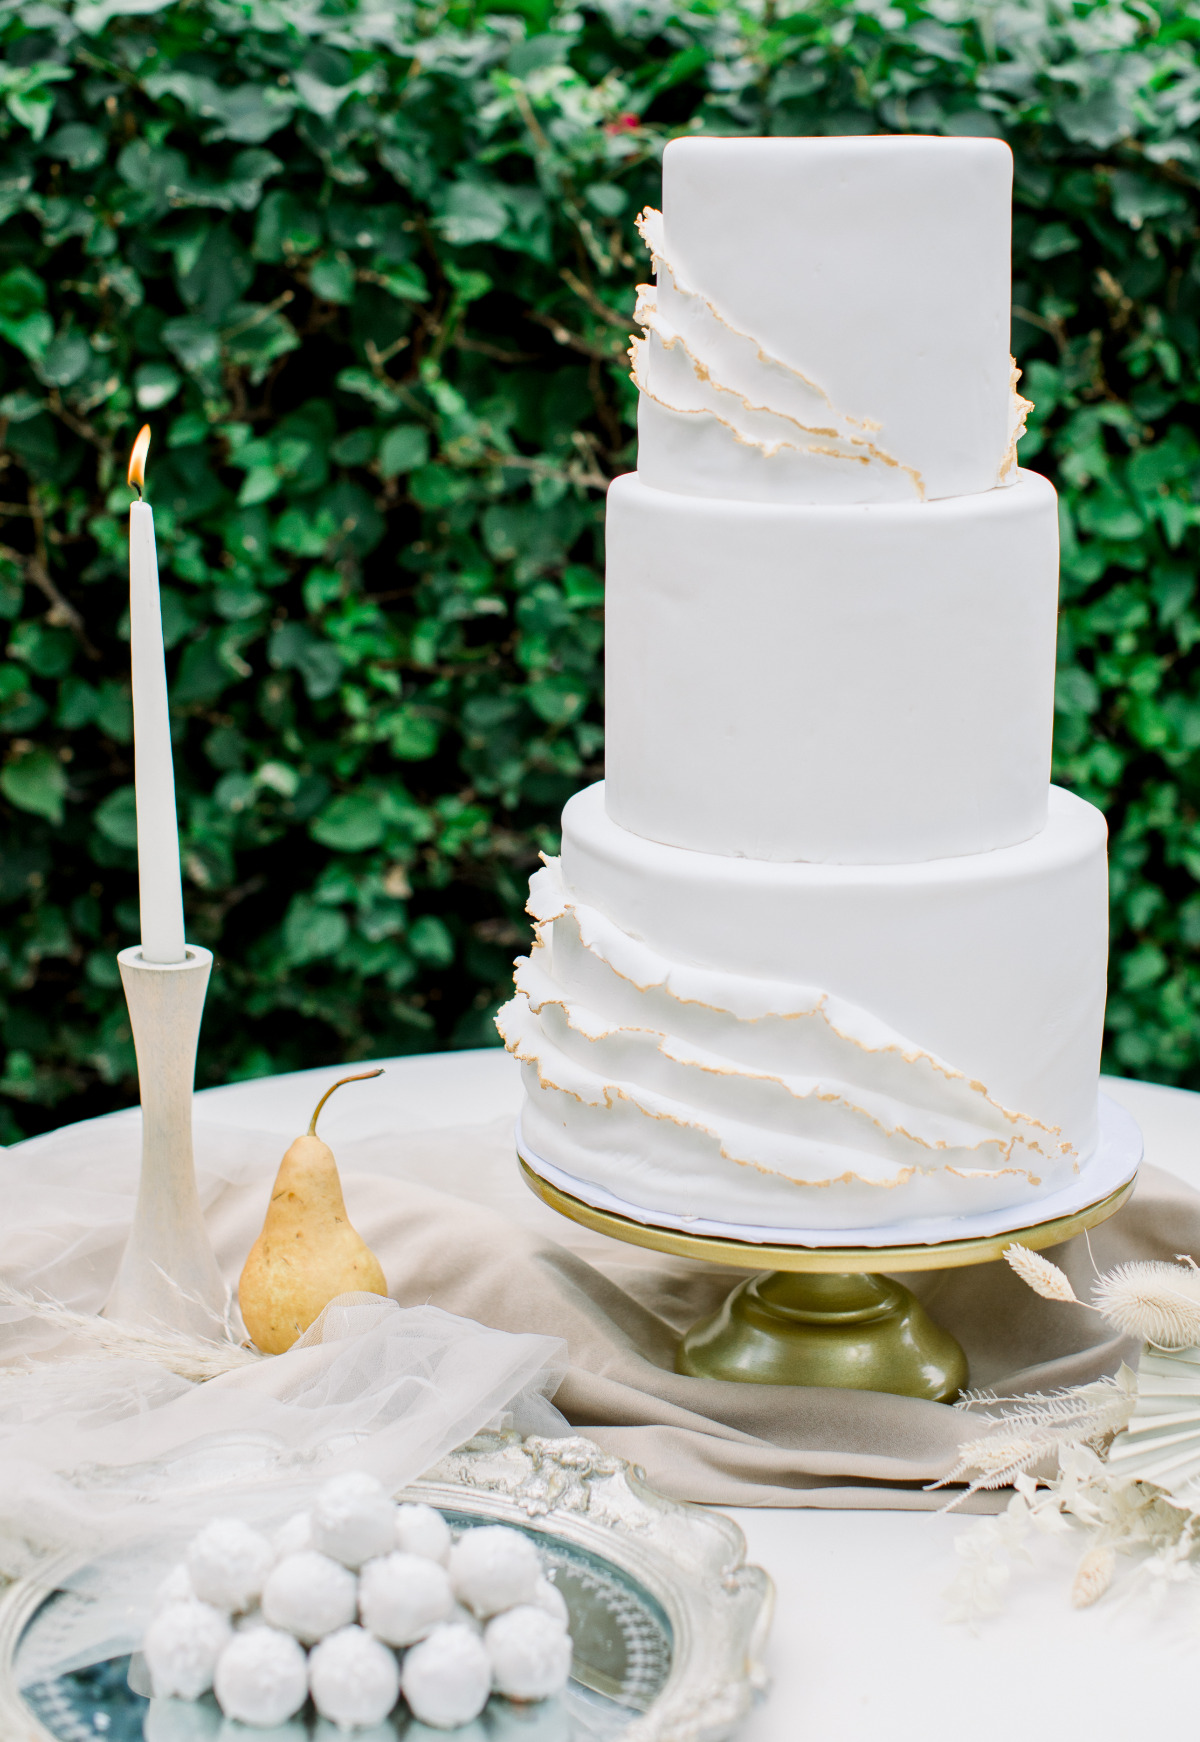 white wedding cake with burnt ruffle sides by Amour de Sucre